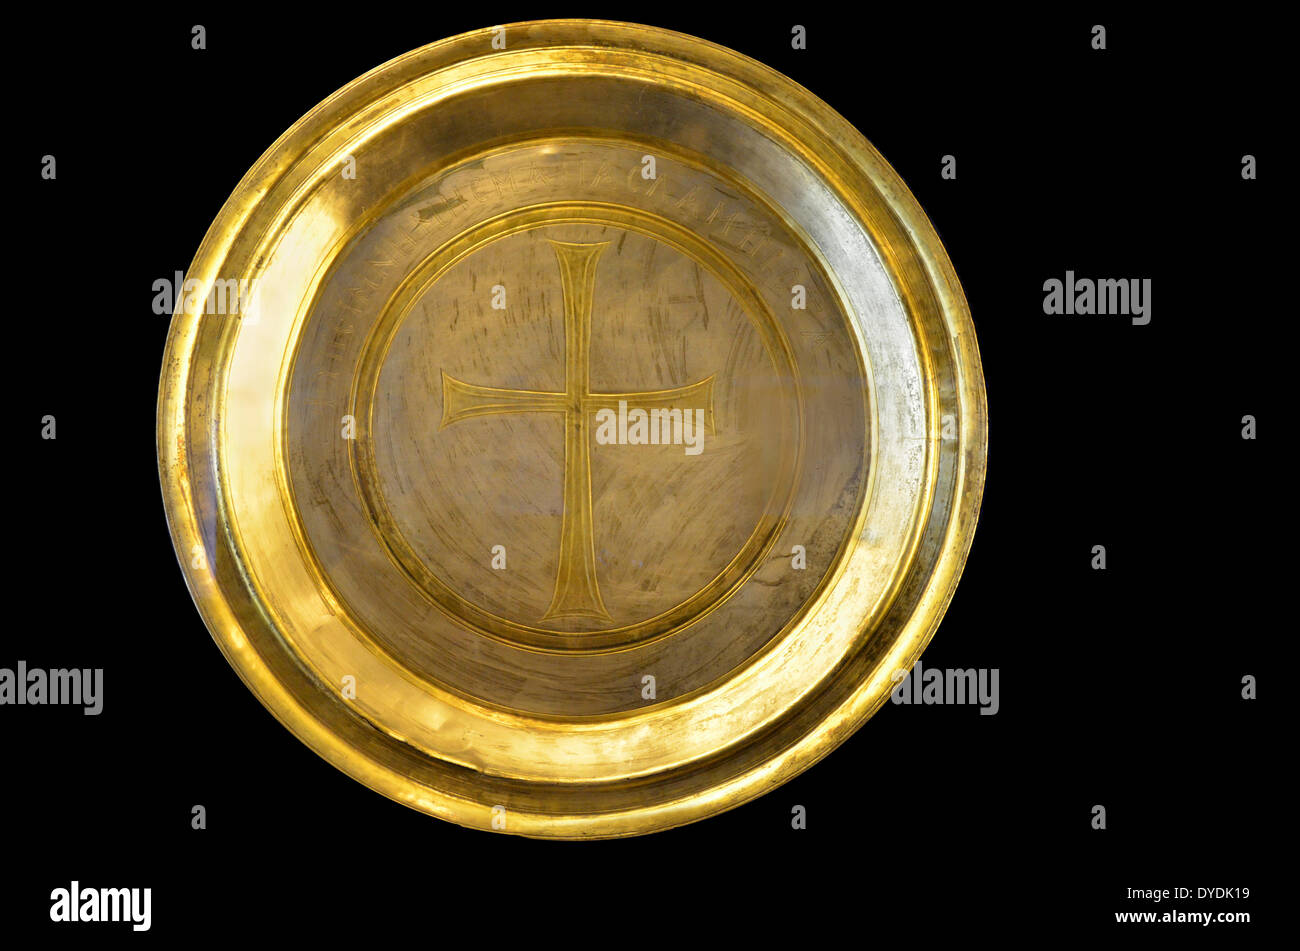 treasure wealth money wealthy rich gold Greece Europe ancient Greece fortune richness riches ancient treasure trove treasury - Stock Image